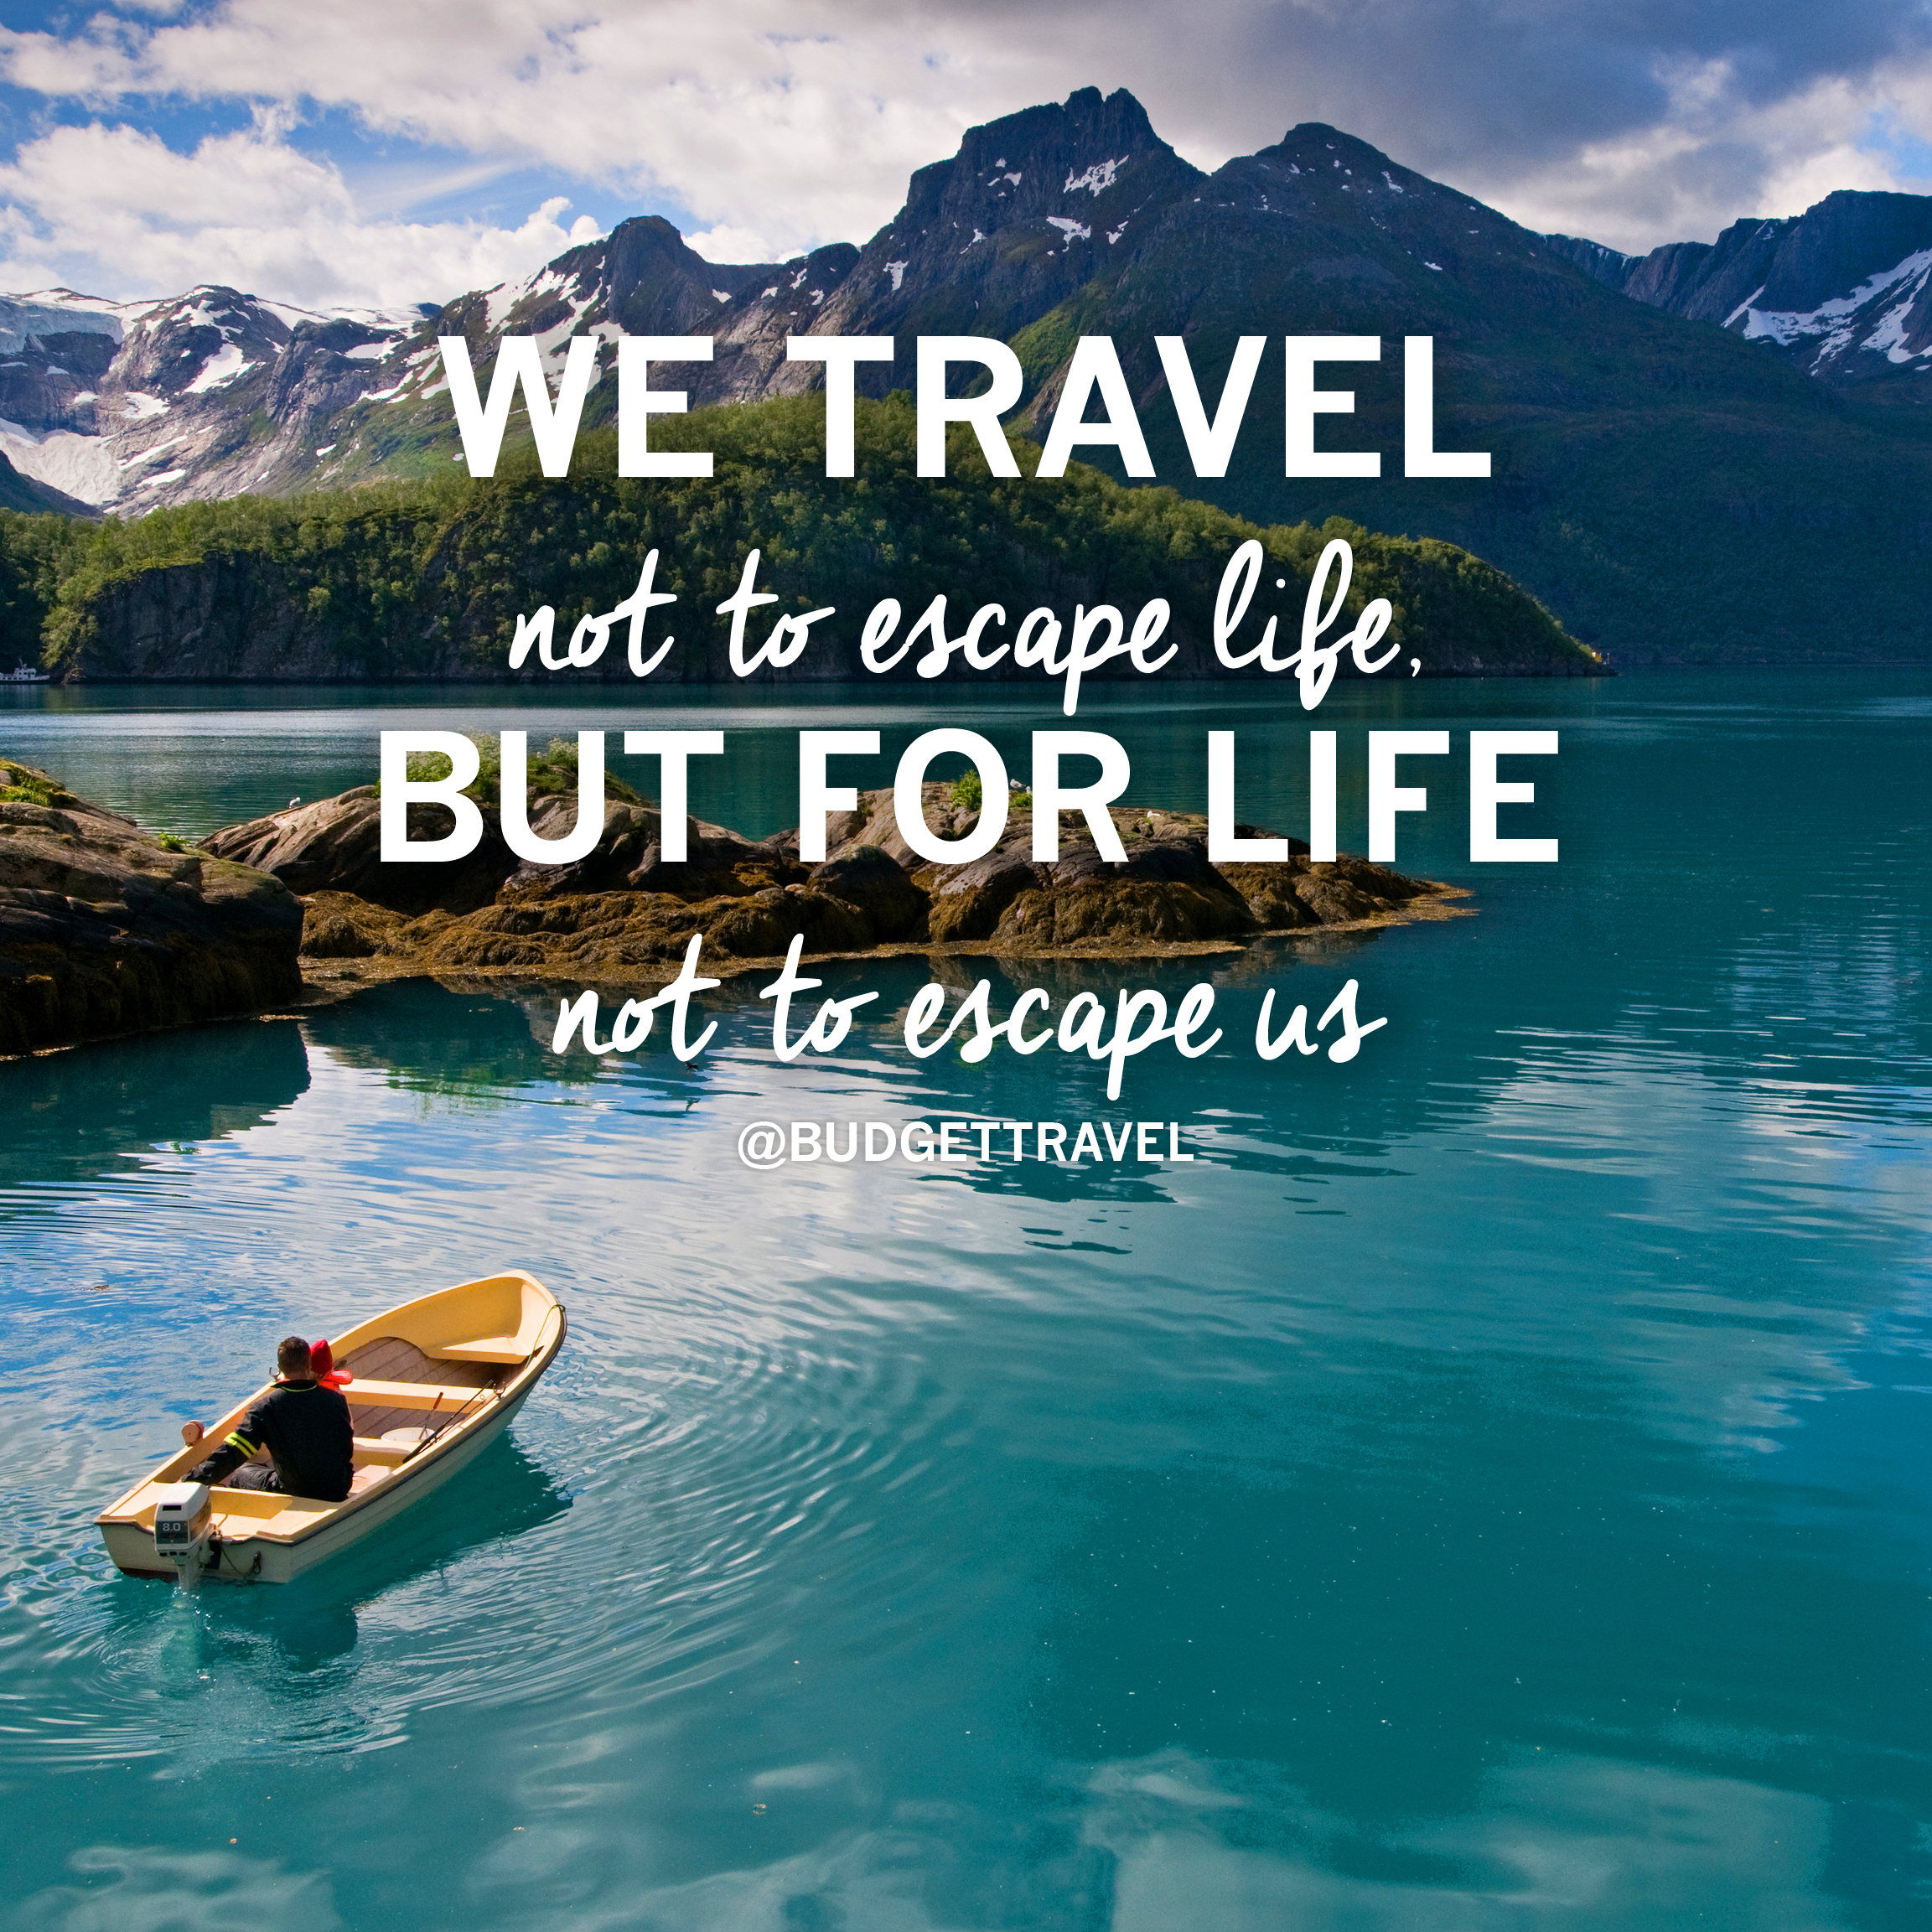 Travel-to-escape-quote-3242015-16520_original